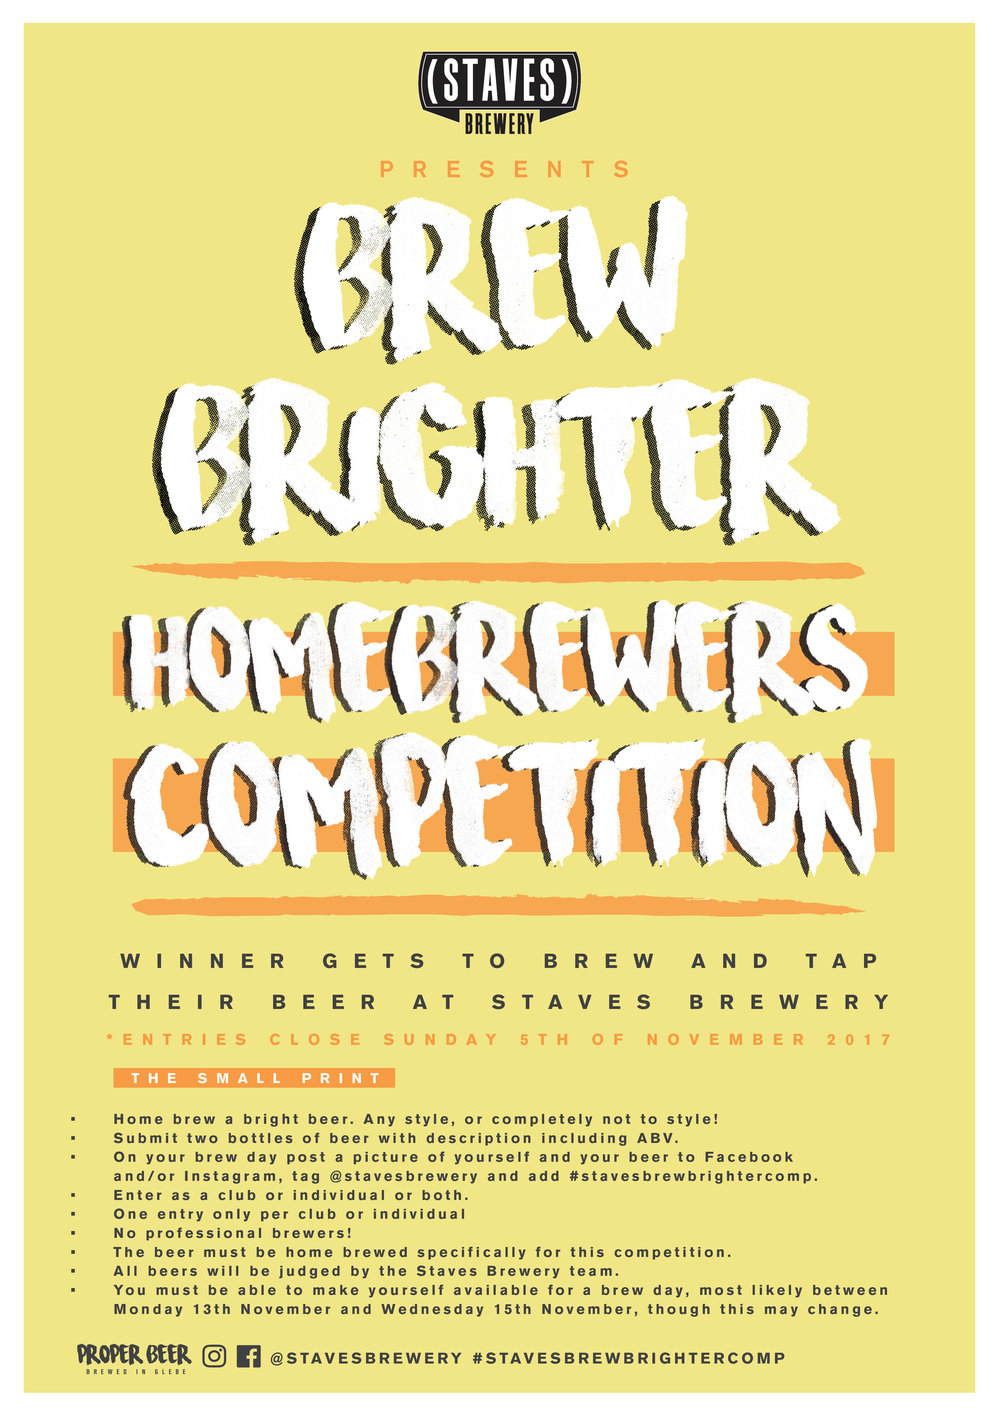 WINNER'S RECIPE TO BE BREWED FULL SCALE - ENTRIES CLOSE 5th NOVEMBER